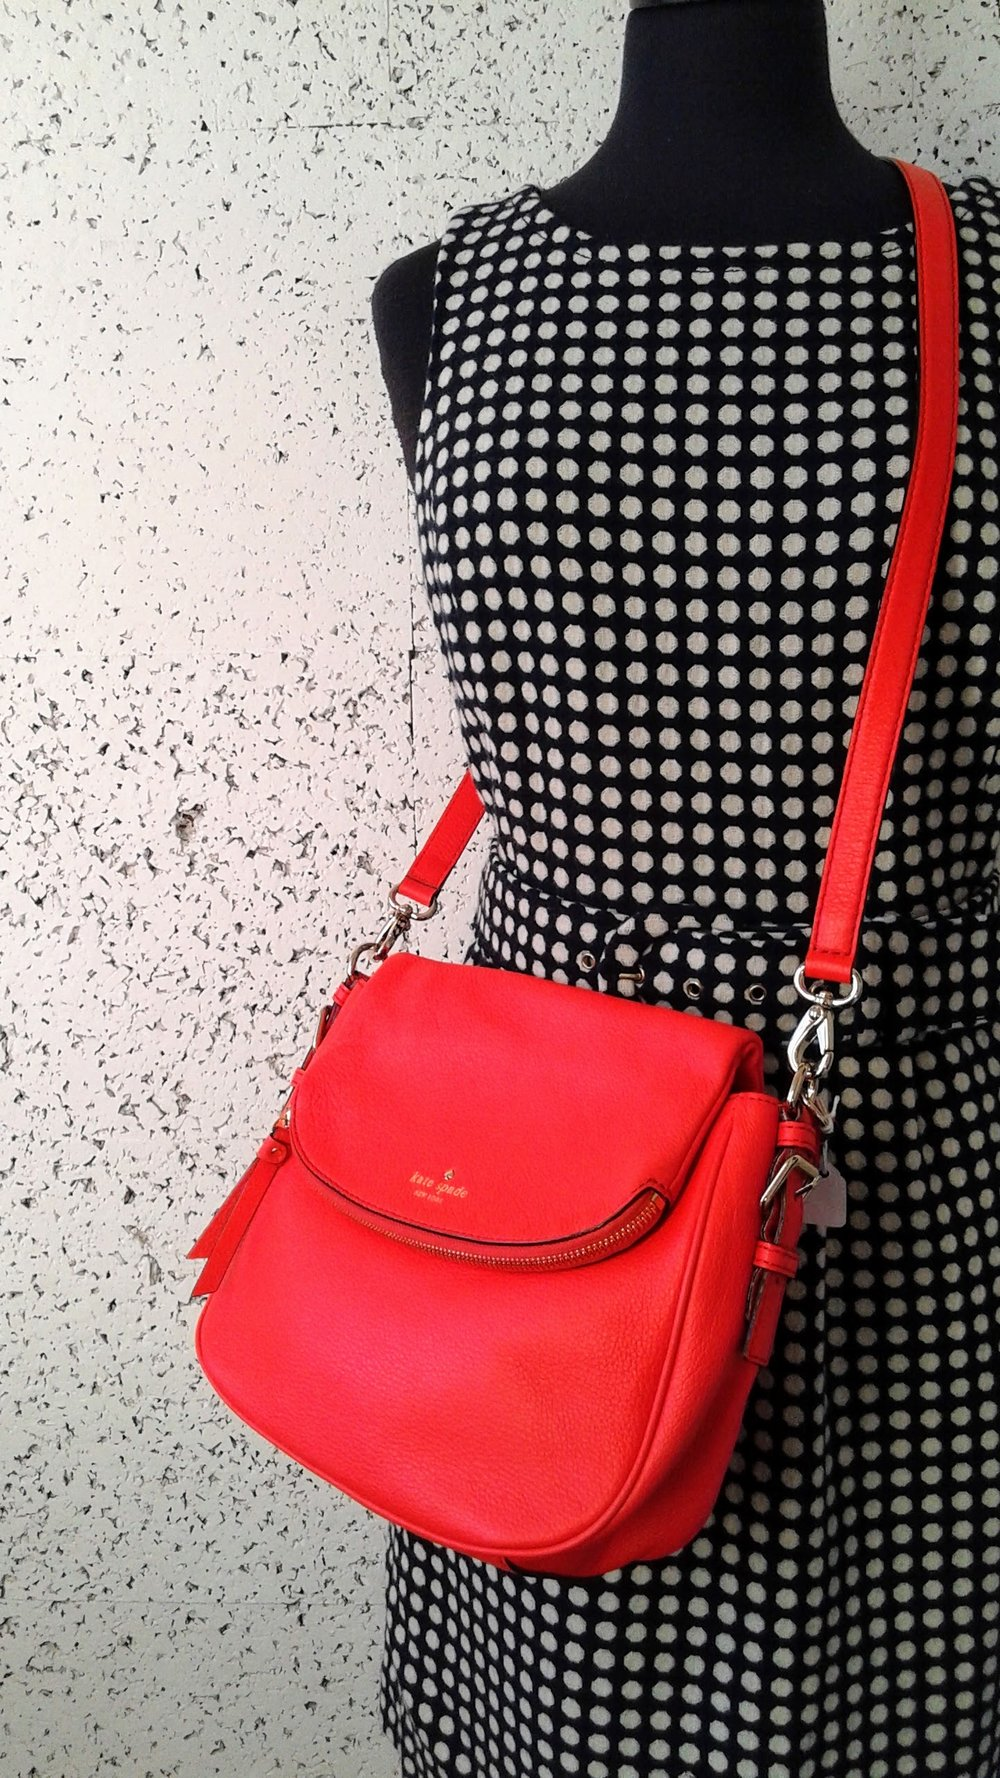 Kate Spade purse. Juicy Couture dress; Size 10, $48